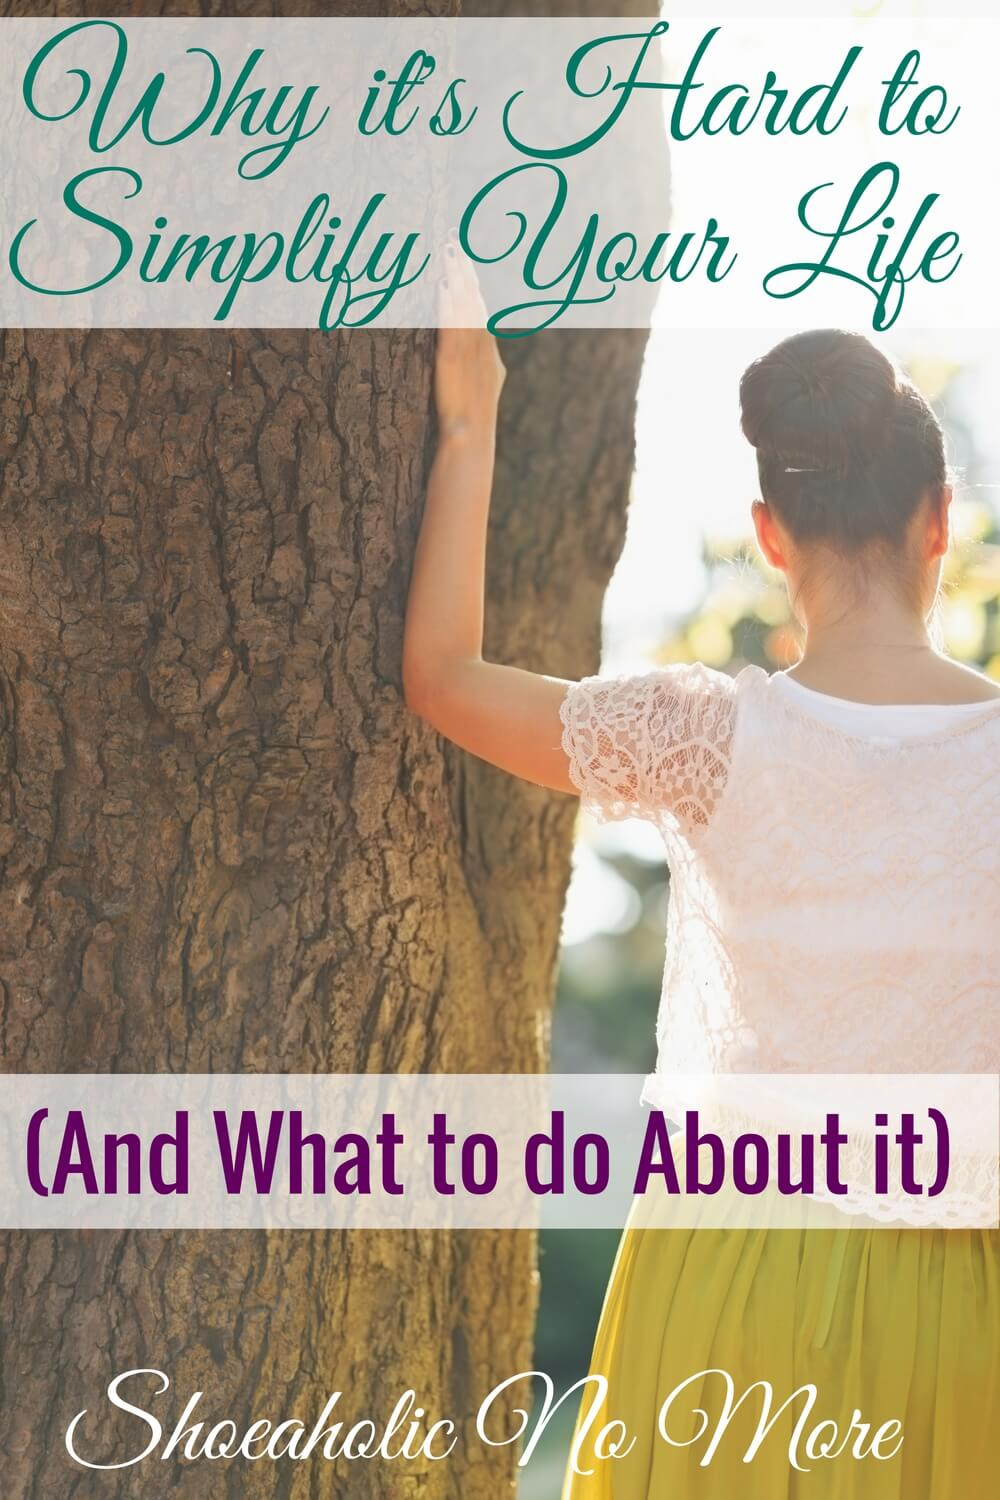 Check this out! It really helped me with simplifying my life. Maybe you can simplify your life too!